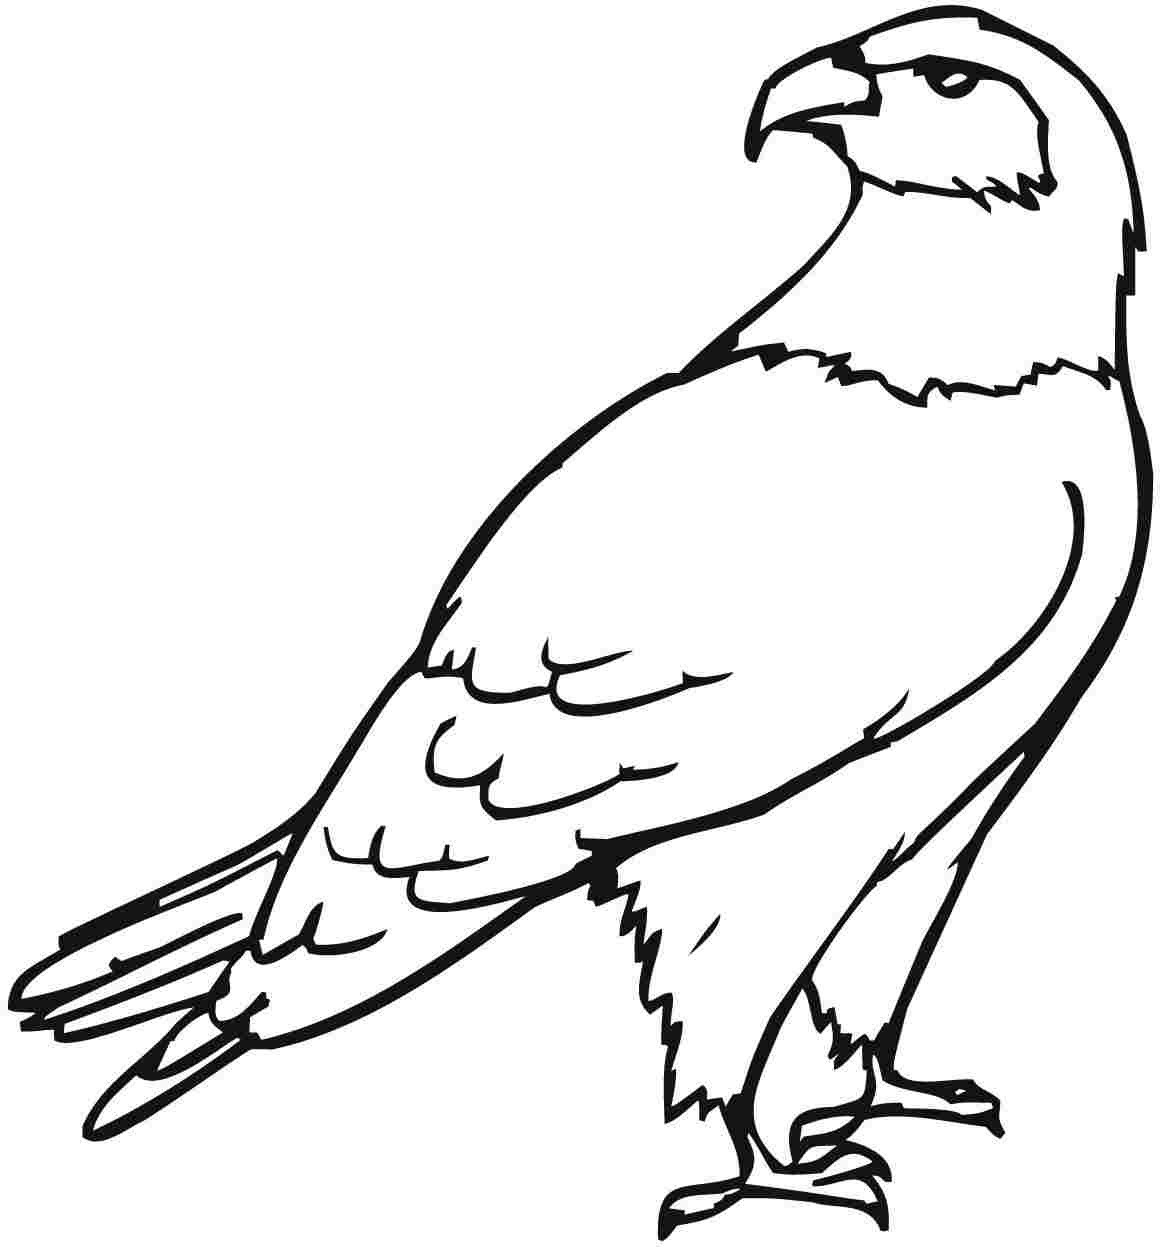 printalbe coloring pages - photo#34